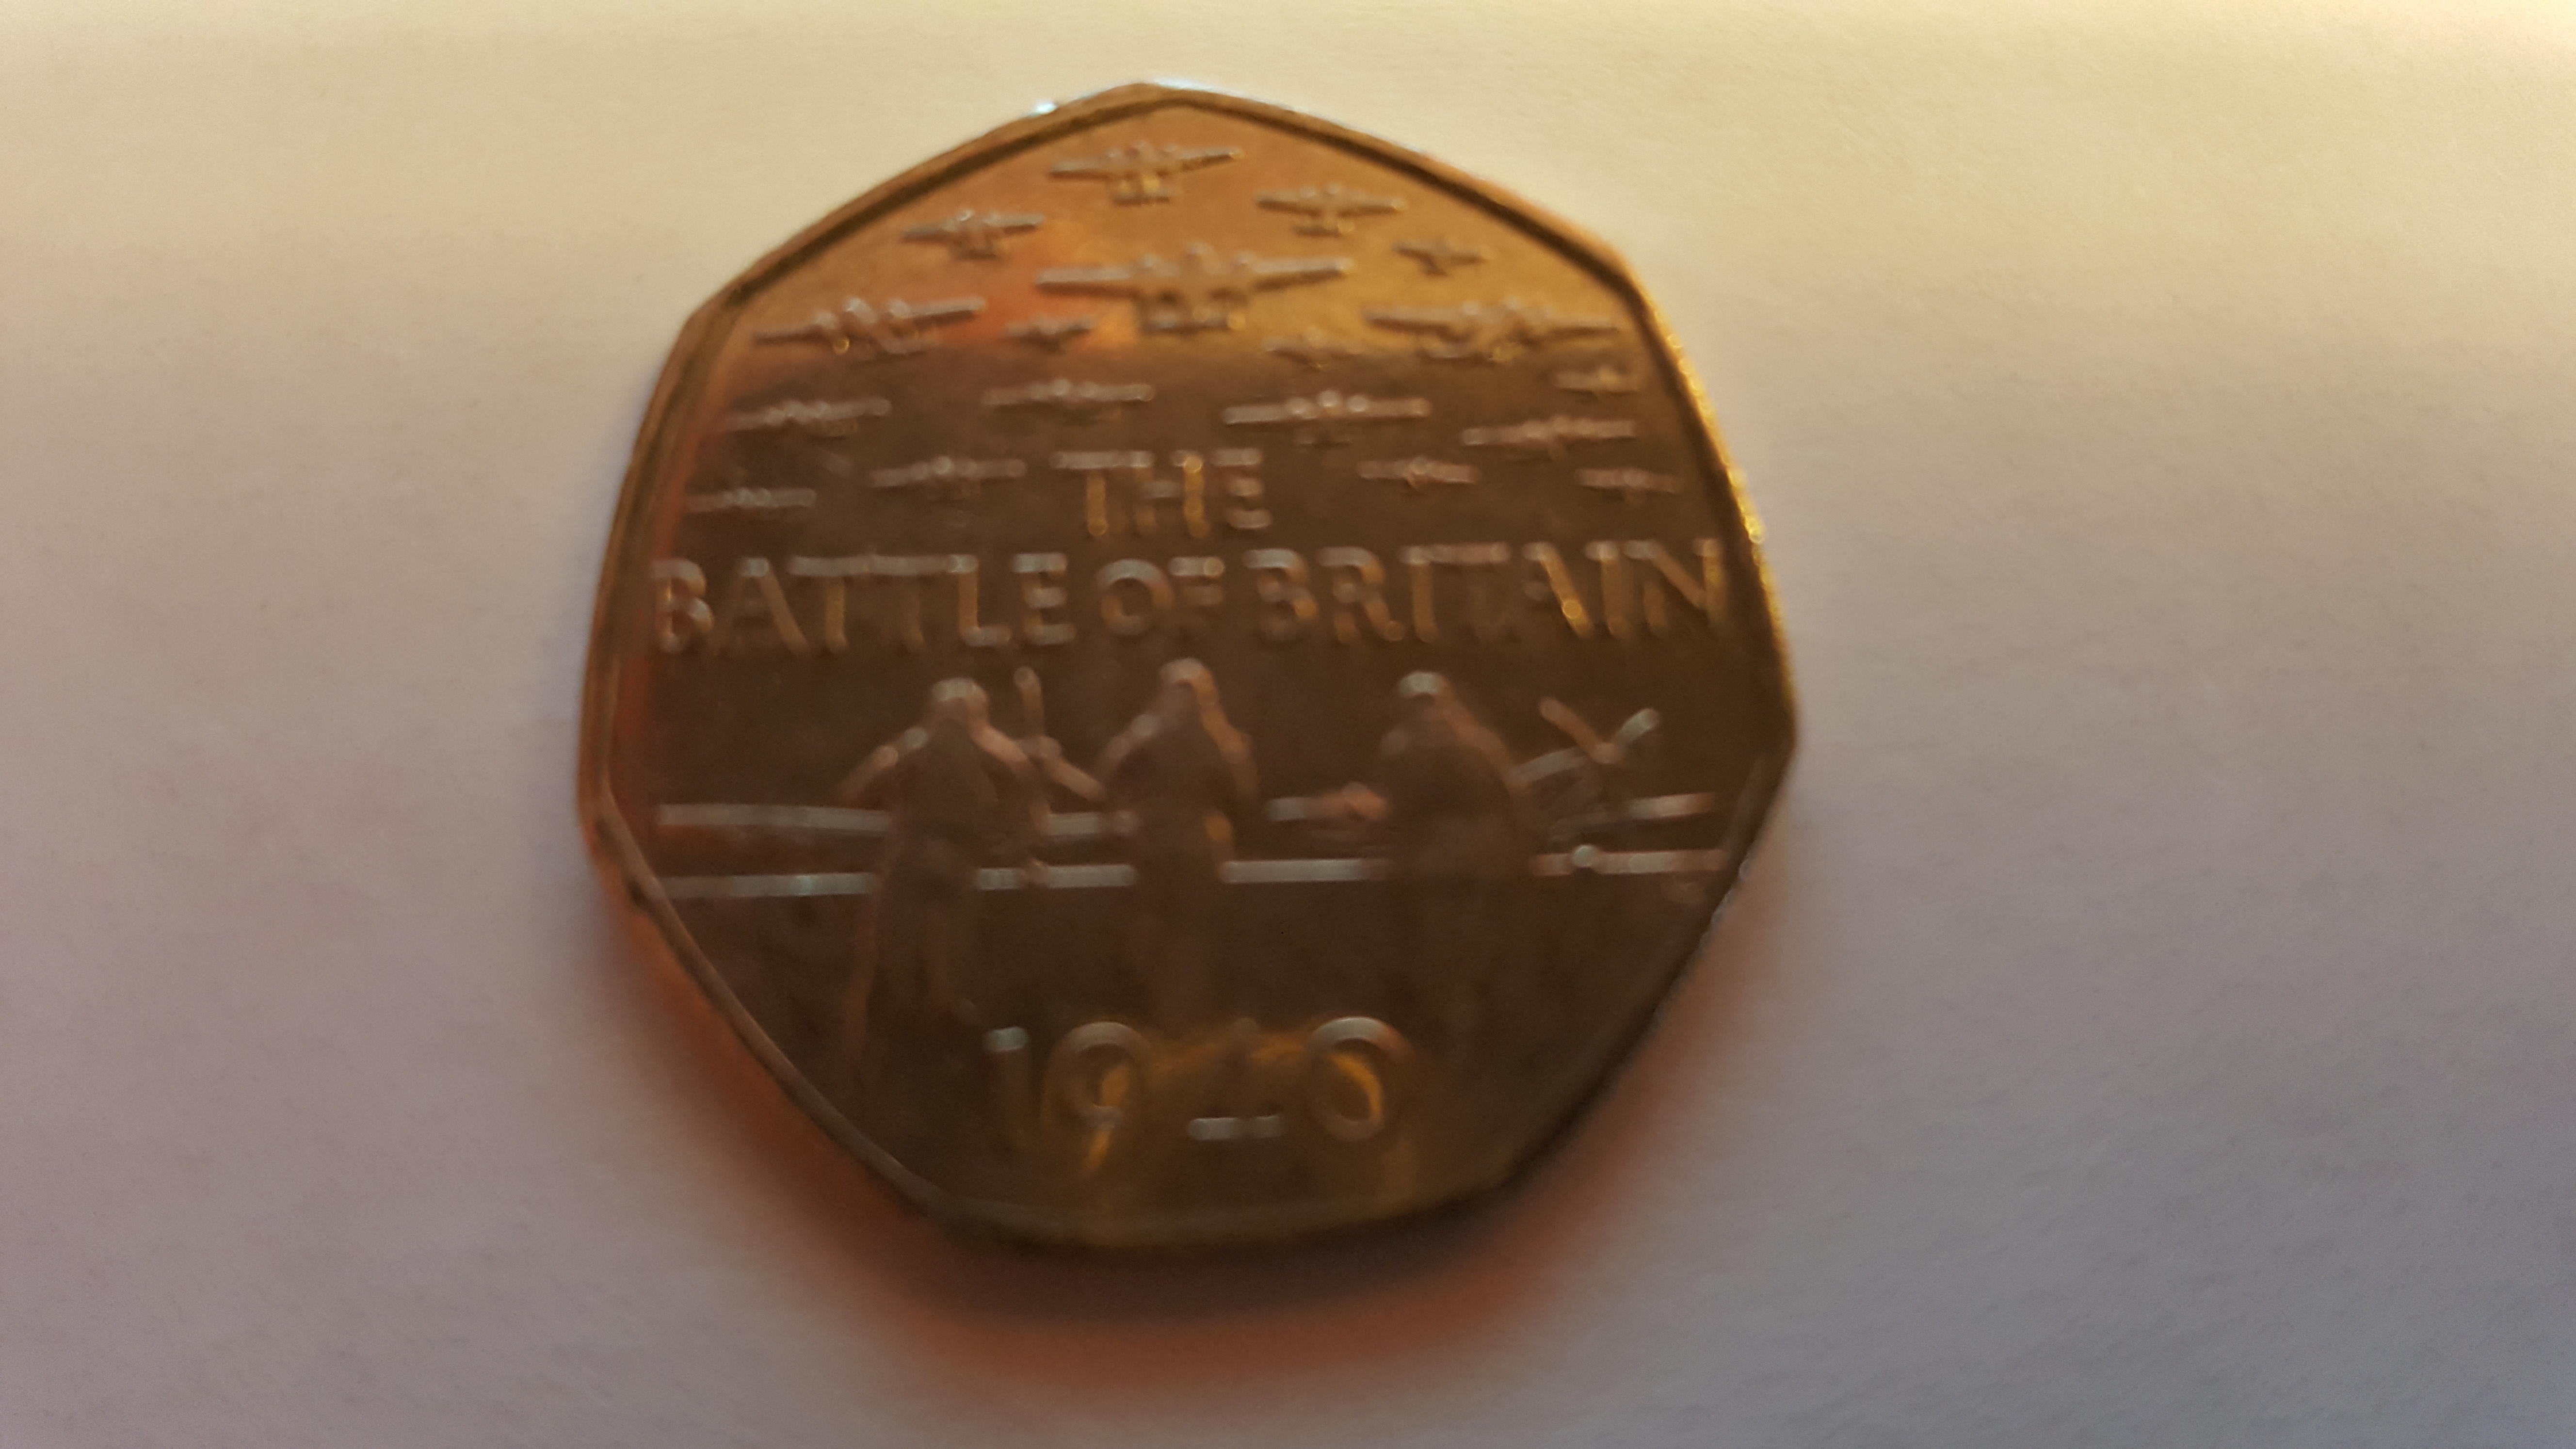 REAR AND COLLECTABLE THE BATTLE OF BRITAIN 50P COIN